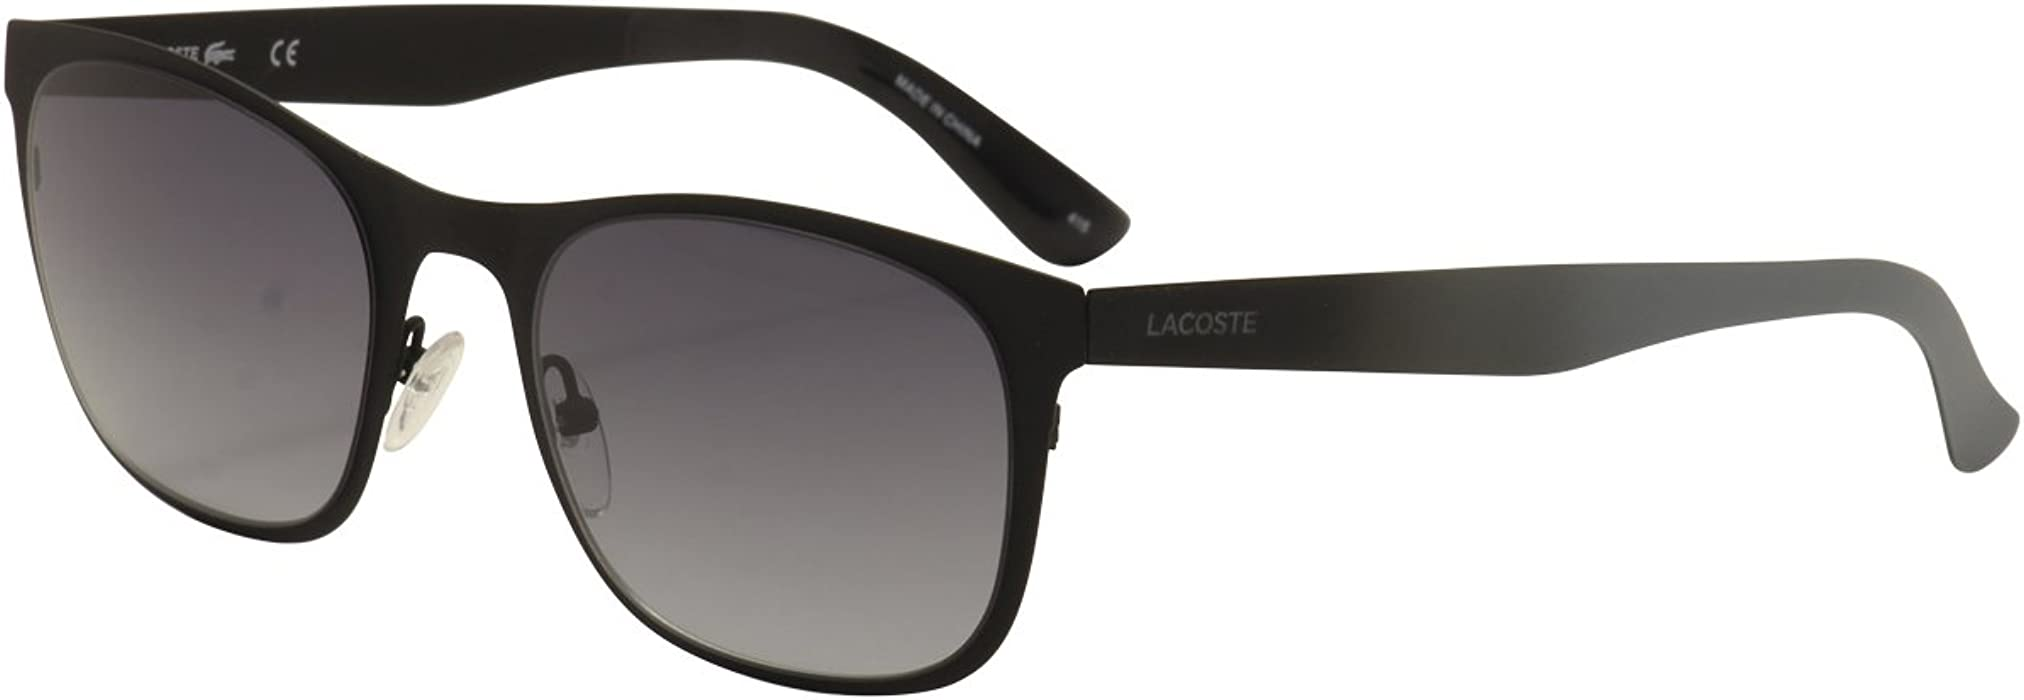 Lacoste Gafas de Sol L173S_001 (55 mm) Negro: Amazon.es ...